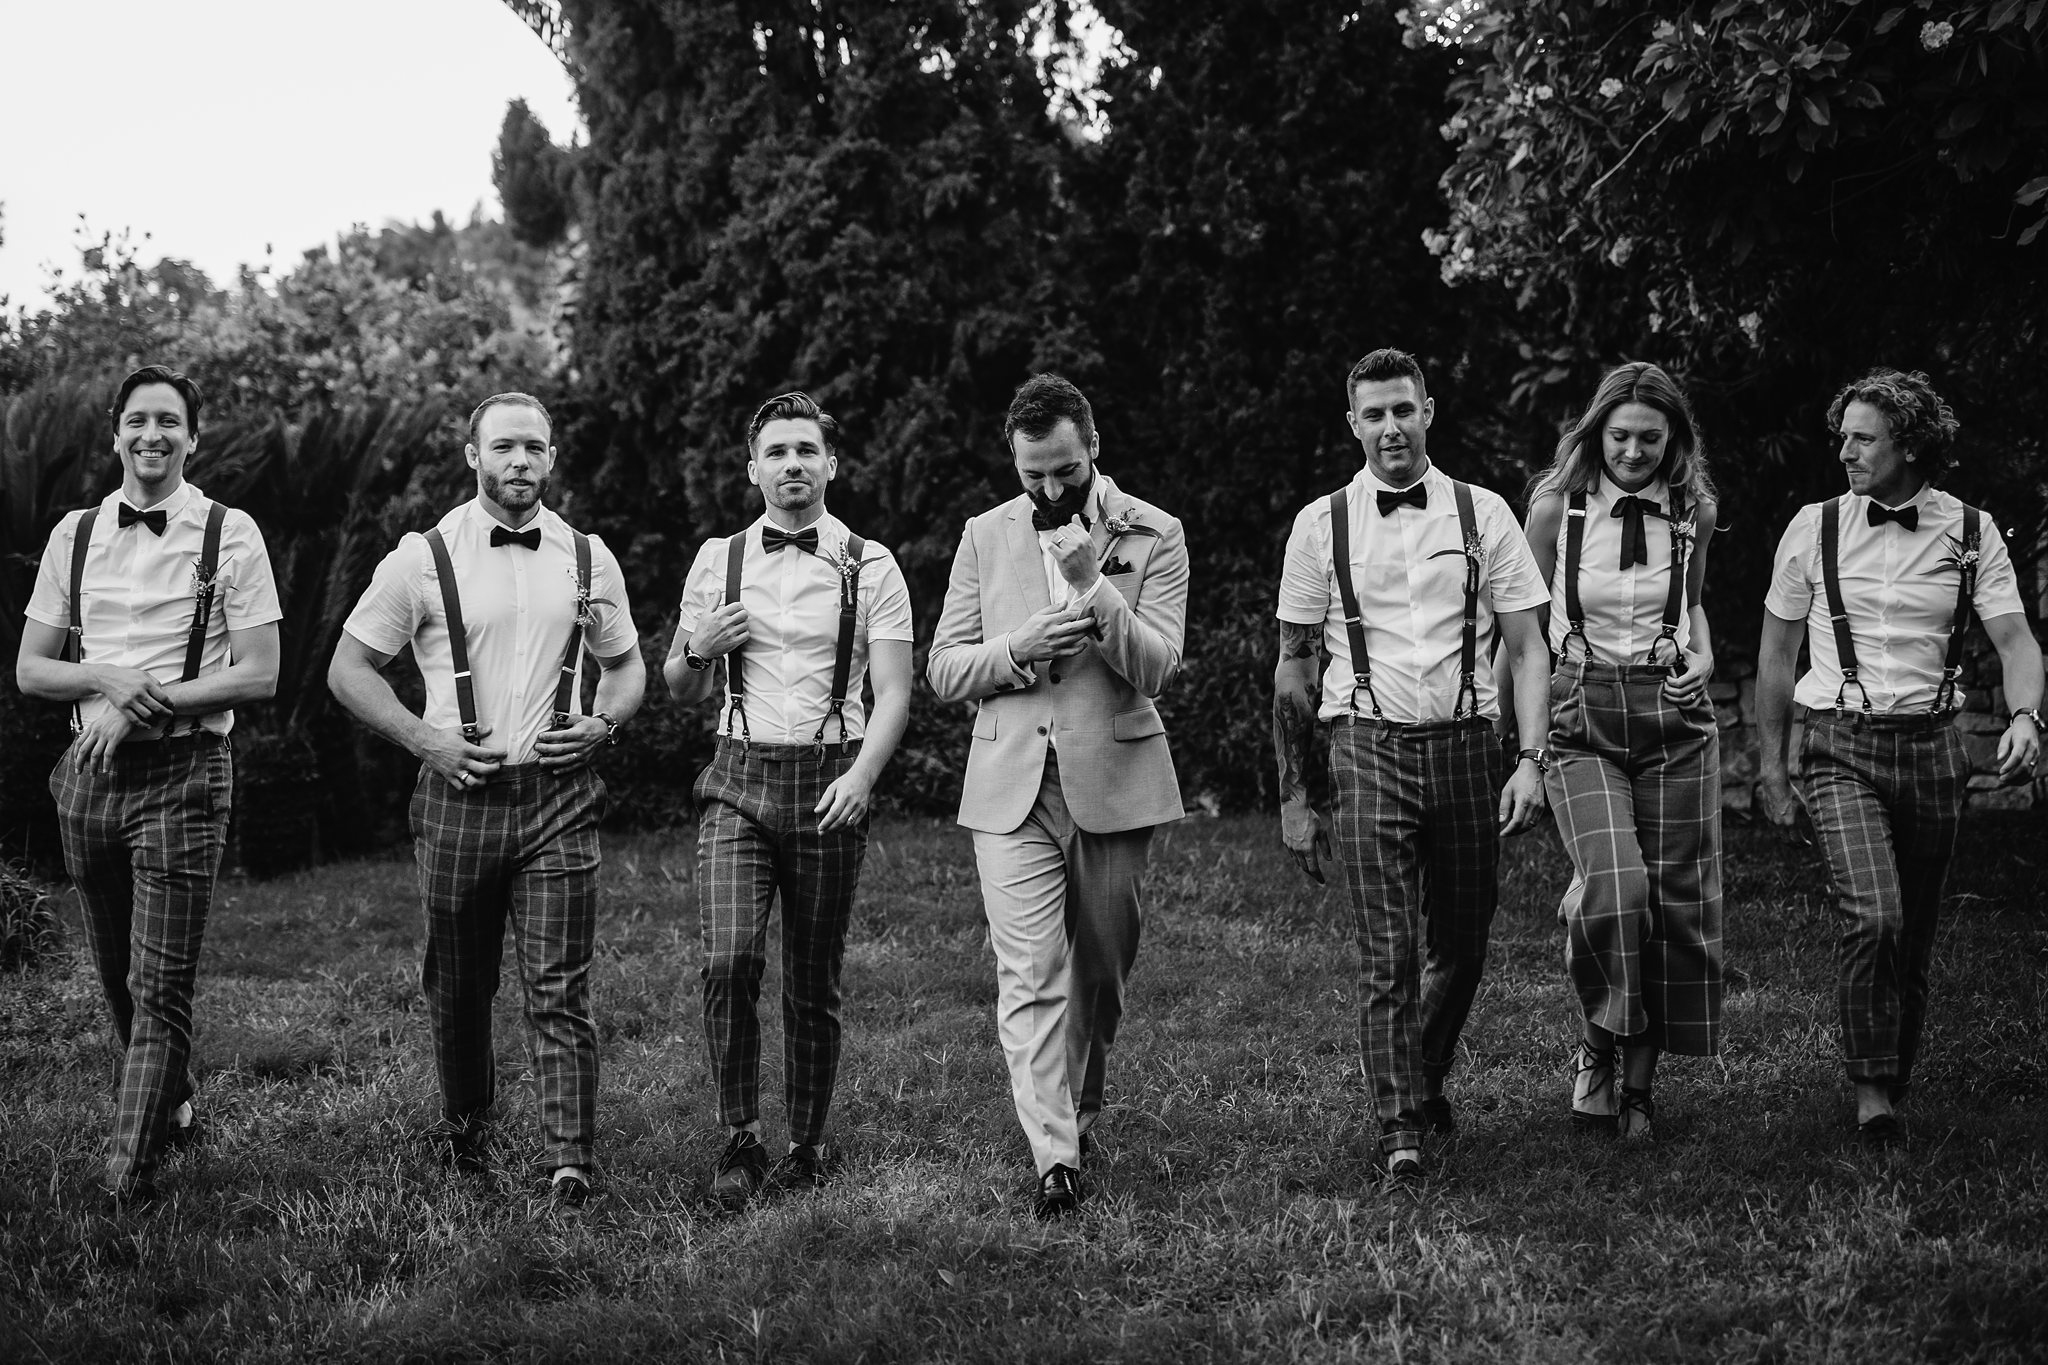 groomsmen-with-suspenders-group-portrait-photo-by-shane-p-watts-photography